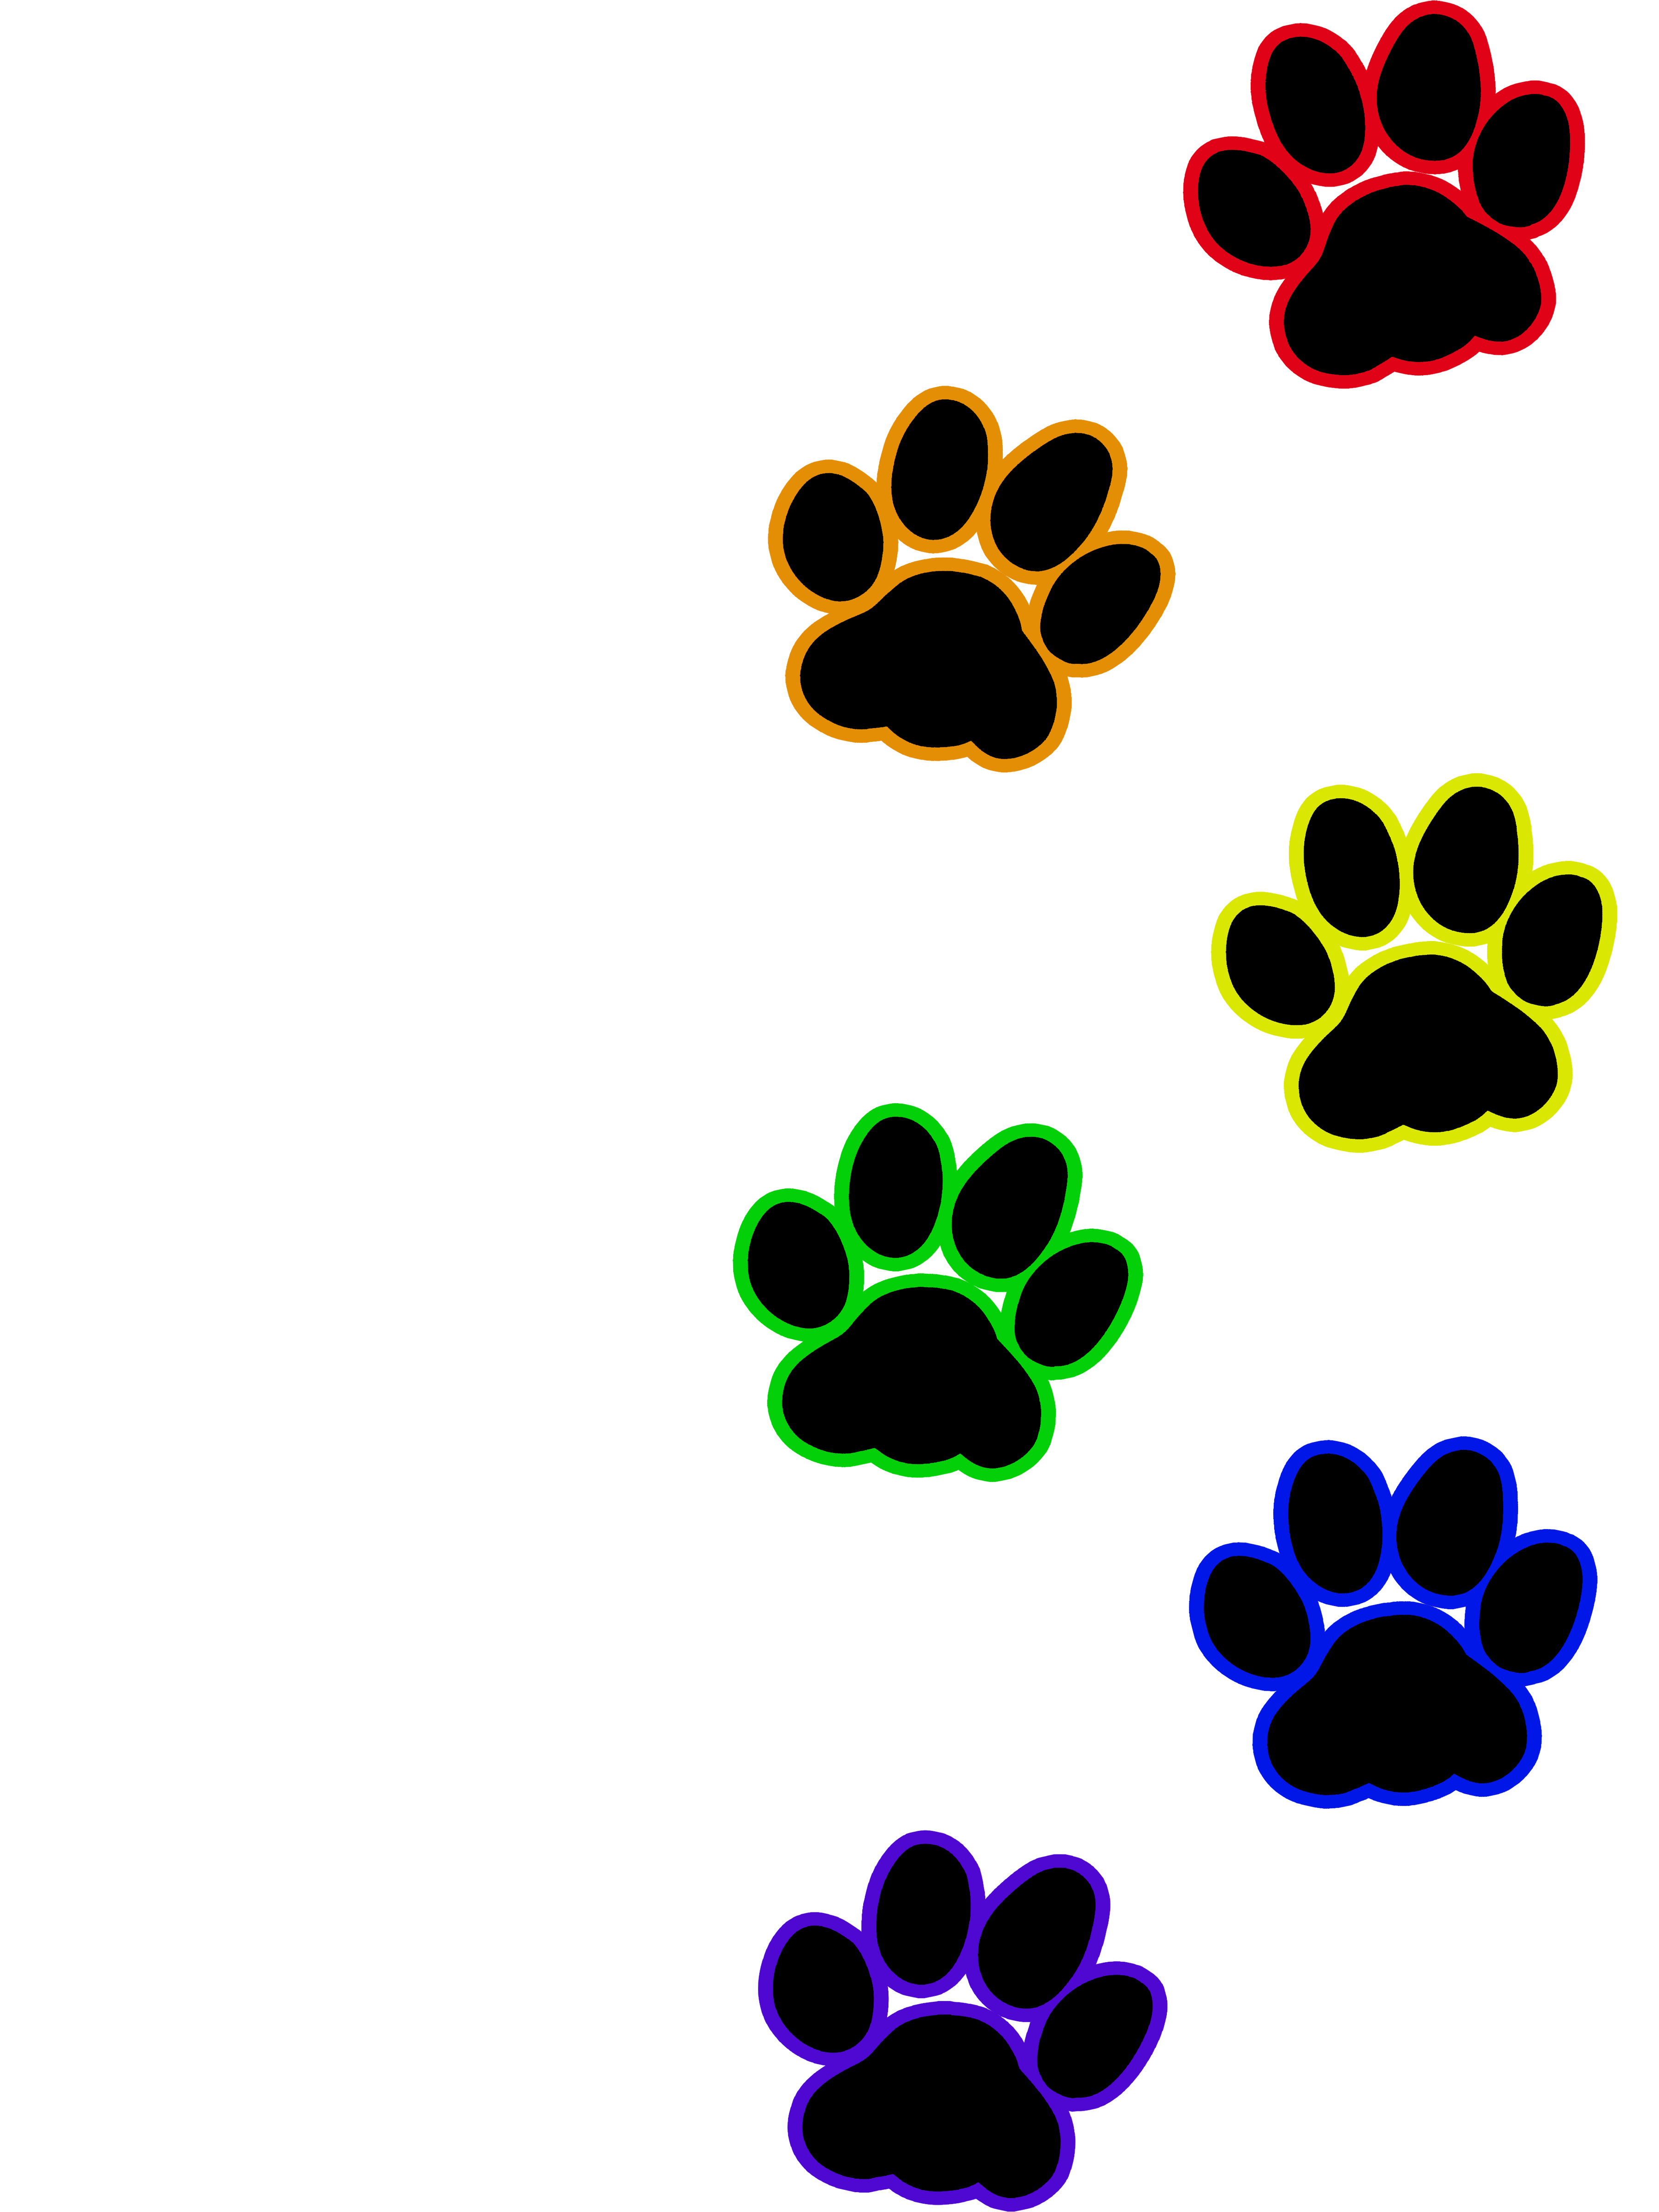 Kitty paw png. Cat print rainbow artworktee